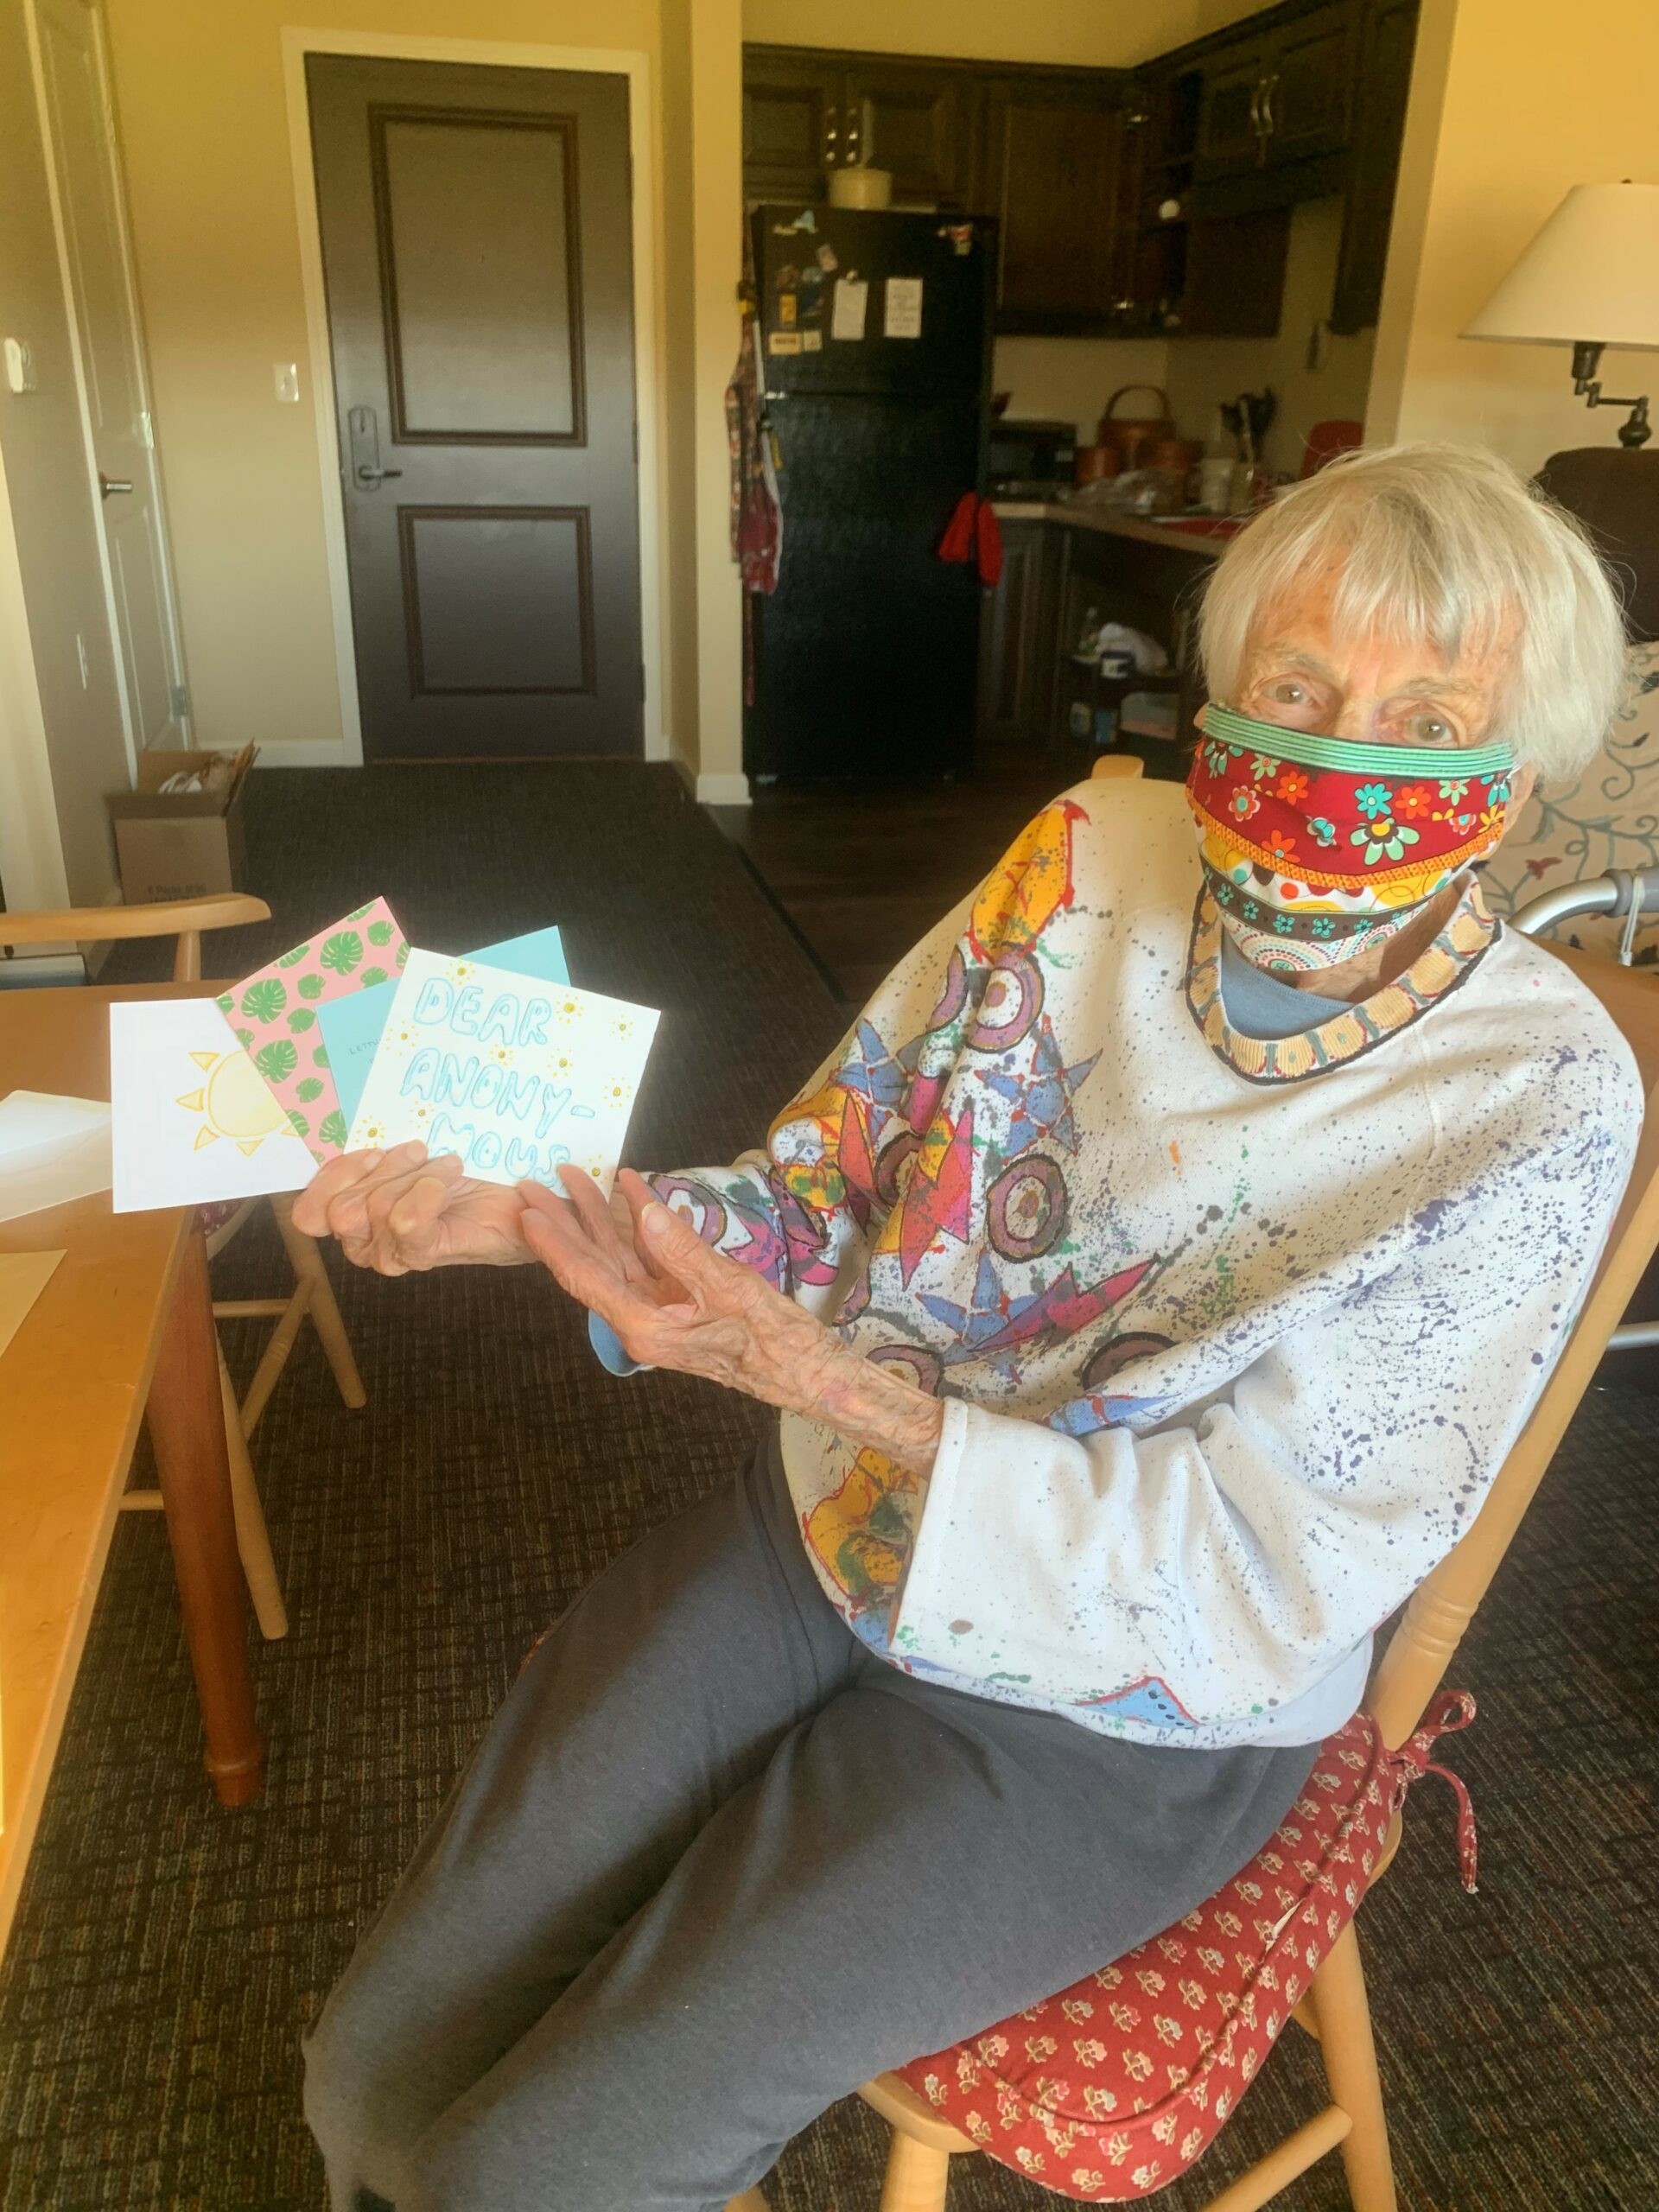 Letters of Love Encouraging Cards for Residents- Anne proudly holds up the greeting cards she received from the group Letters of Love. It is a group that collects cards from all over the US and sends them to retirement residents to uplift their spirits and let them know how much they are cared about!